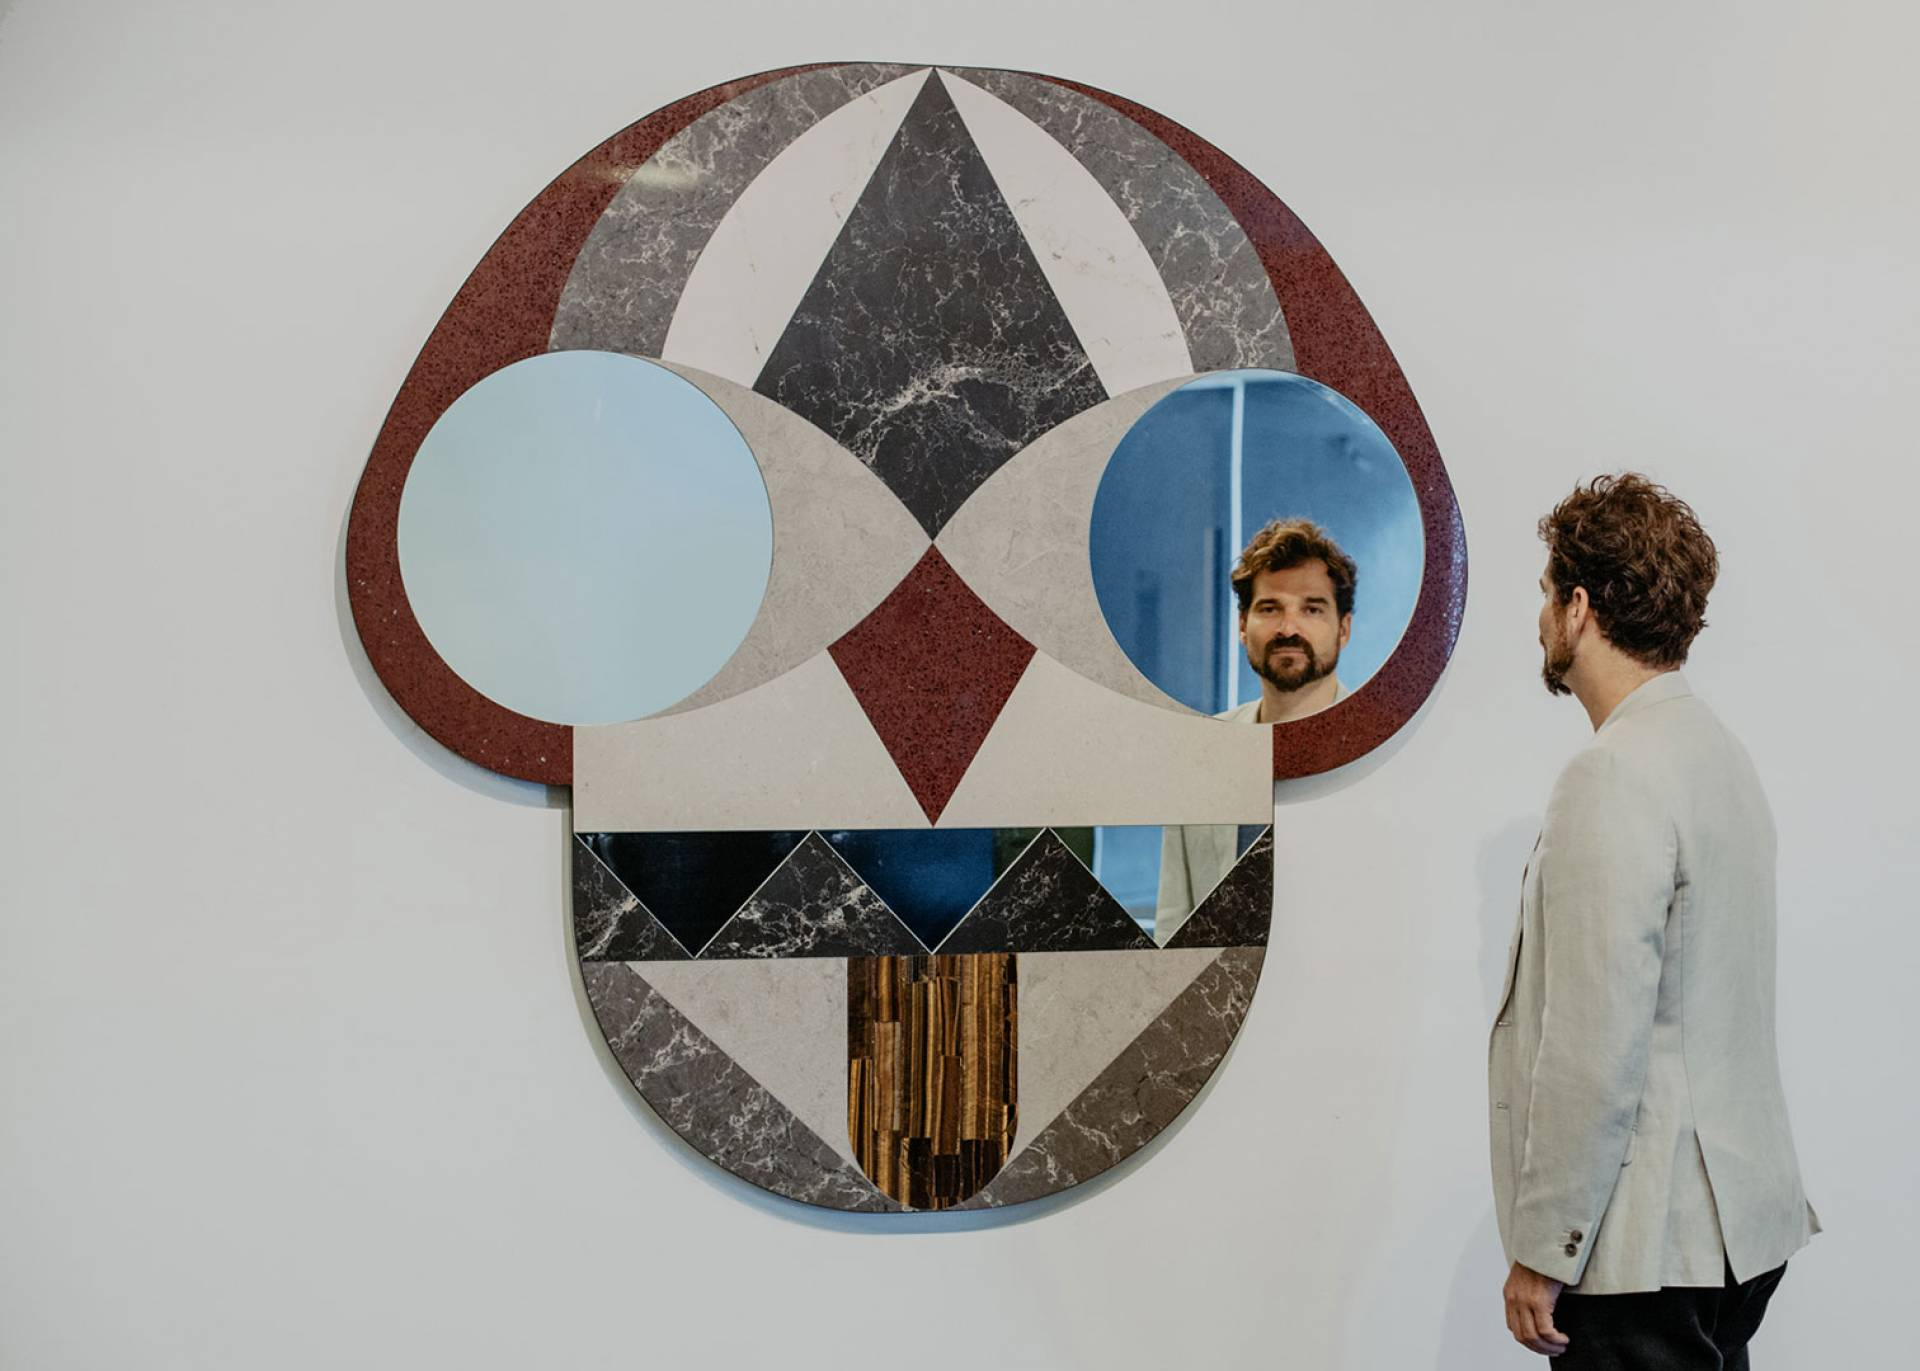 Jaime Hayón designs giant mask like mirror